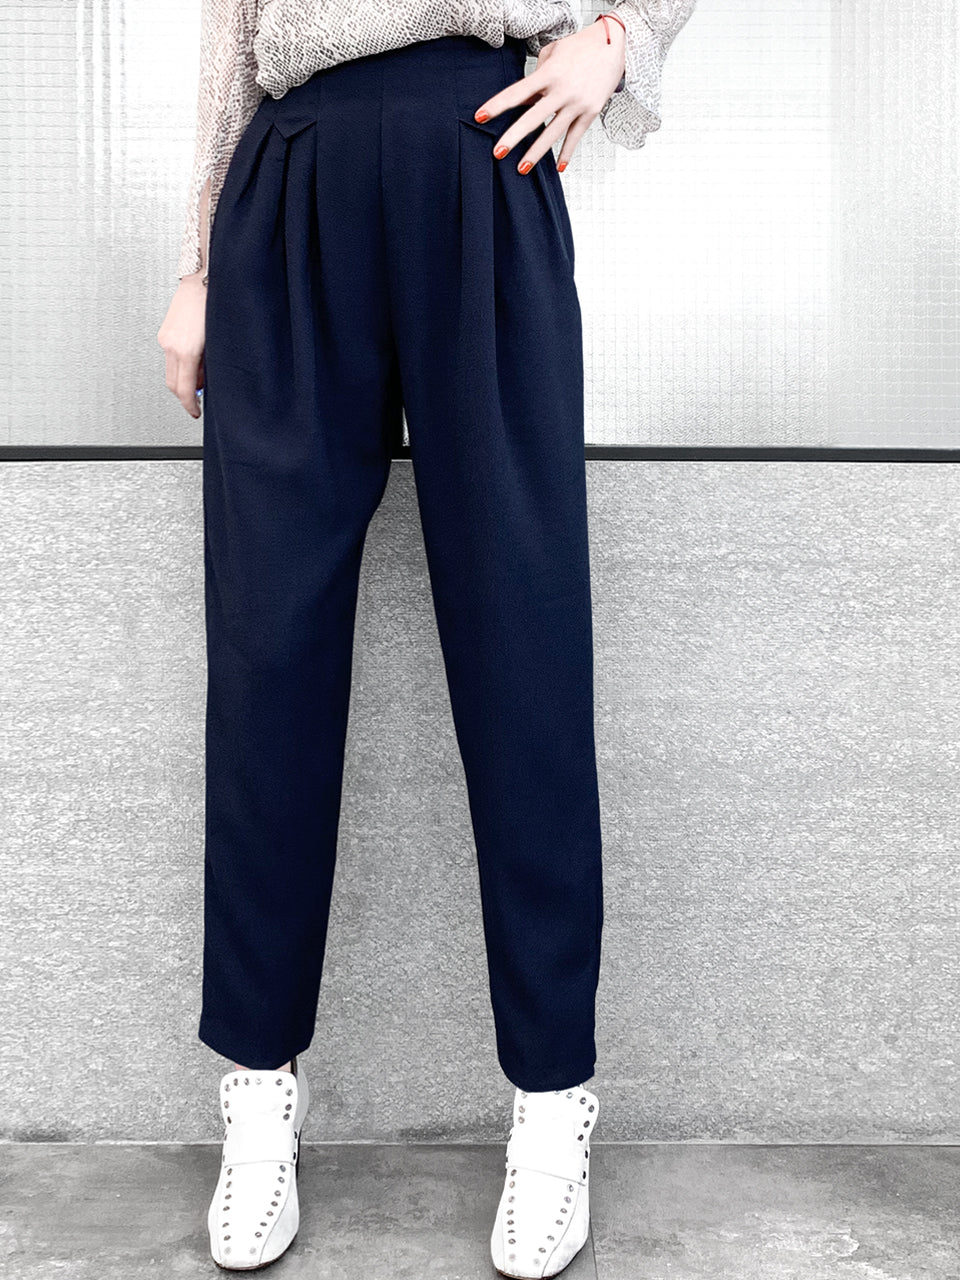 Surprise Sale! Preorder Navy High Waist Pleated Tapered Pants